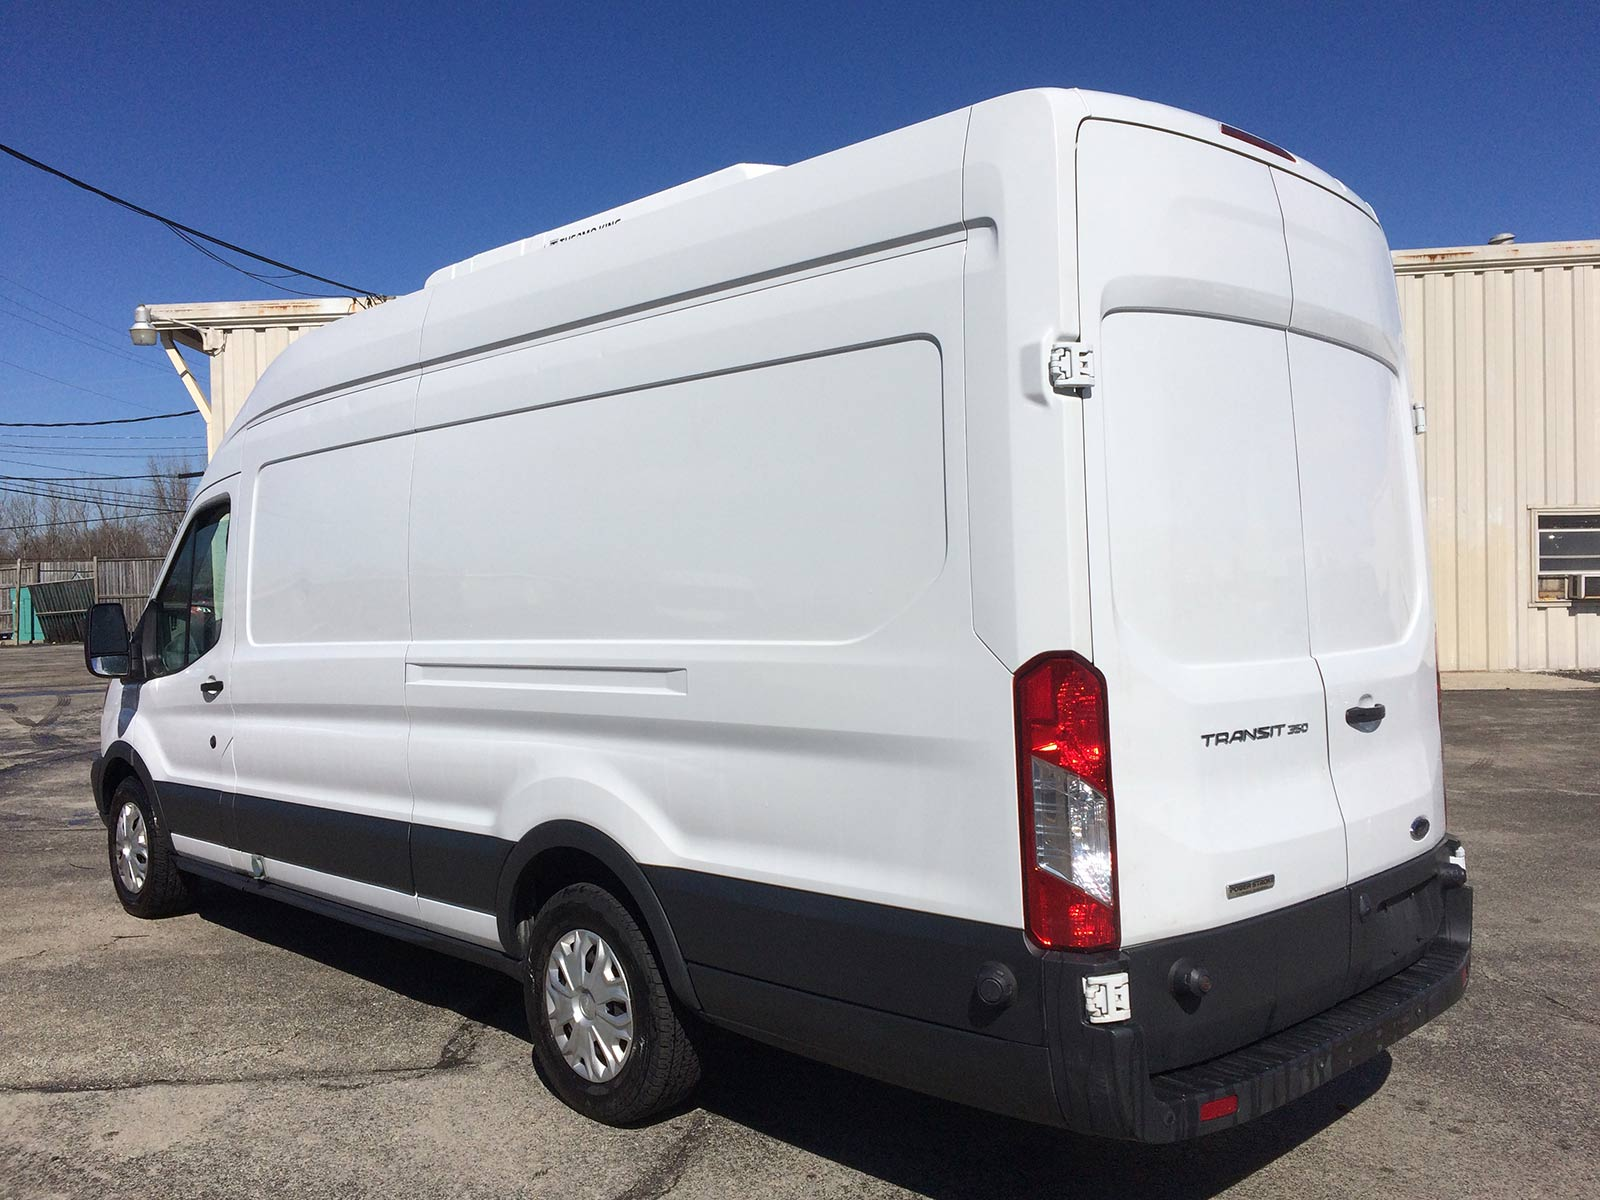 Ford Cargo Van For Sale >> USED 2015 FORD DIESEL T350 TRANSIT VANS